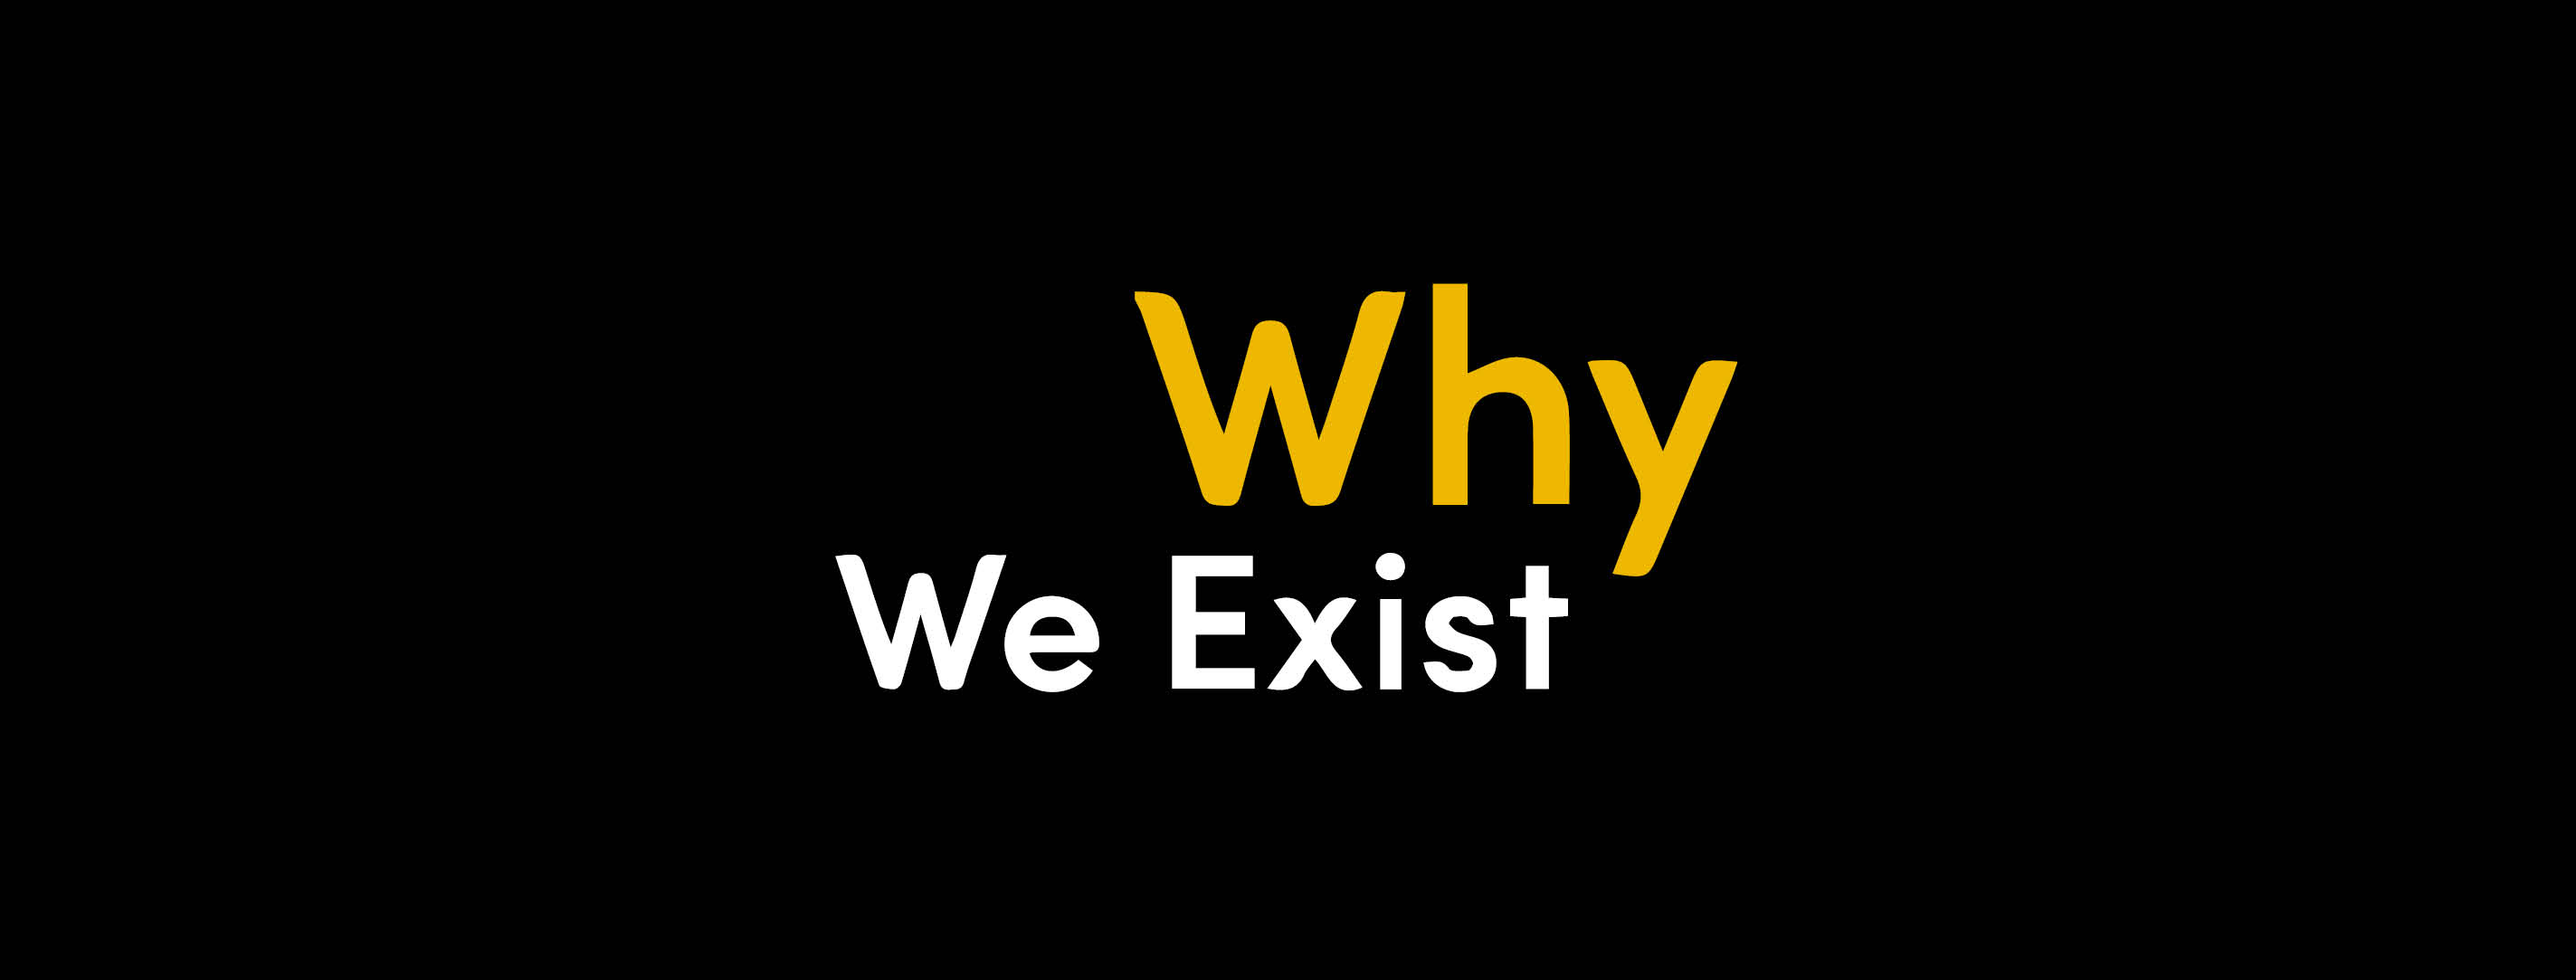 About Us - Why We Exist